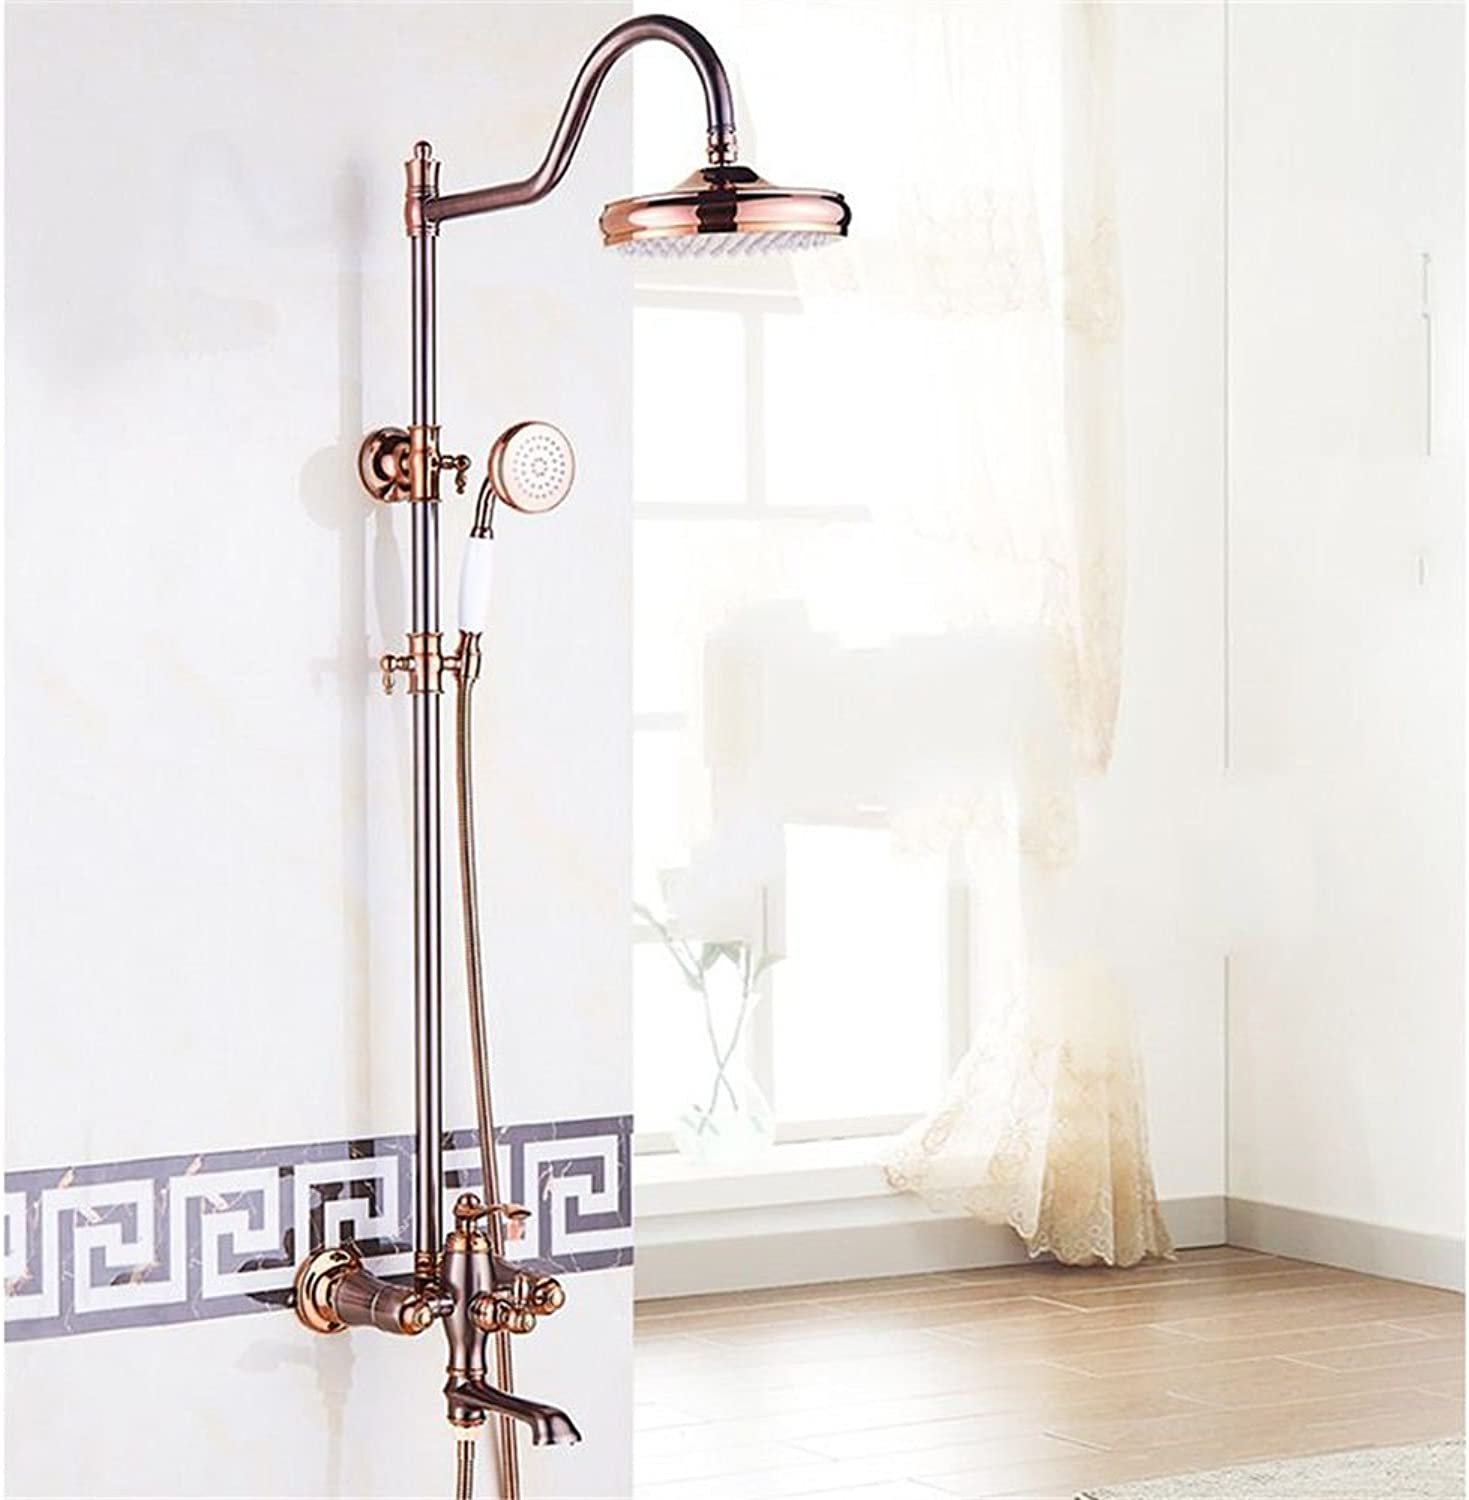 Lalaky Taps Faucet Kitchen Mixer Sink Waterfall Bathroom Mixer Basin Mixer Tap for Kitchen Bathroom and Washroom Jade gold Full Copper Wall-Mounted Sprinkler + Hand-Held Supercharged Shower